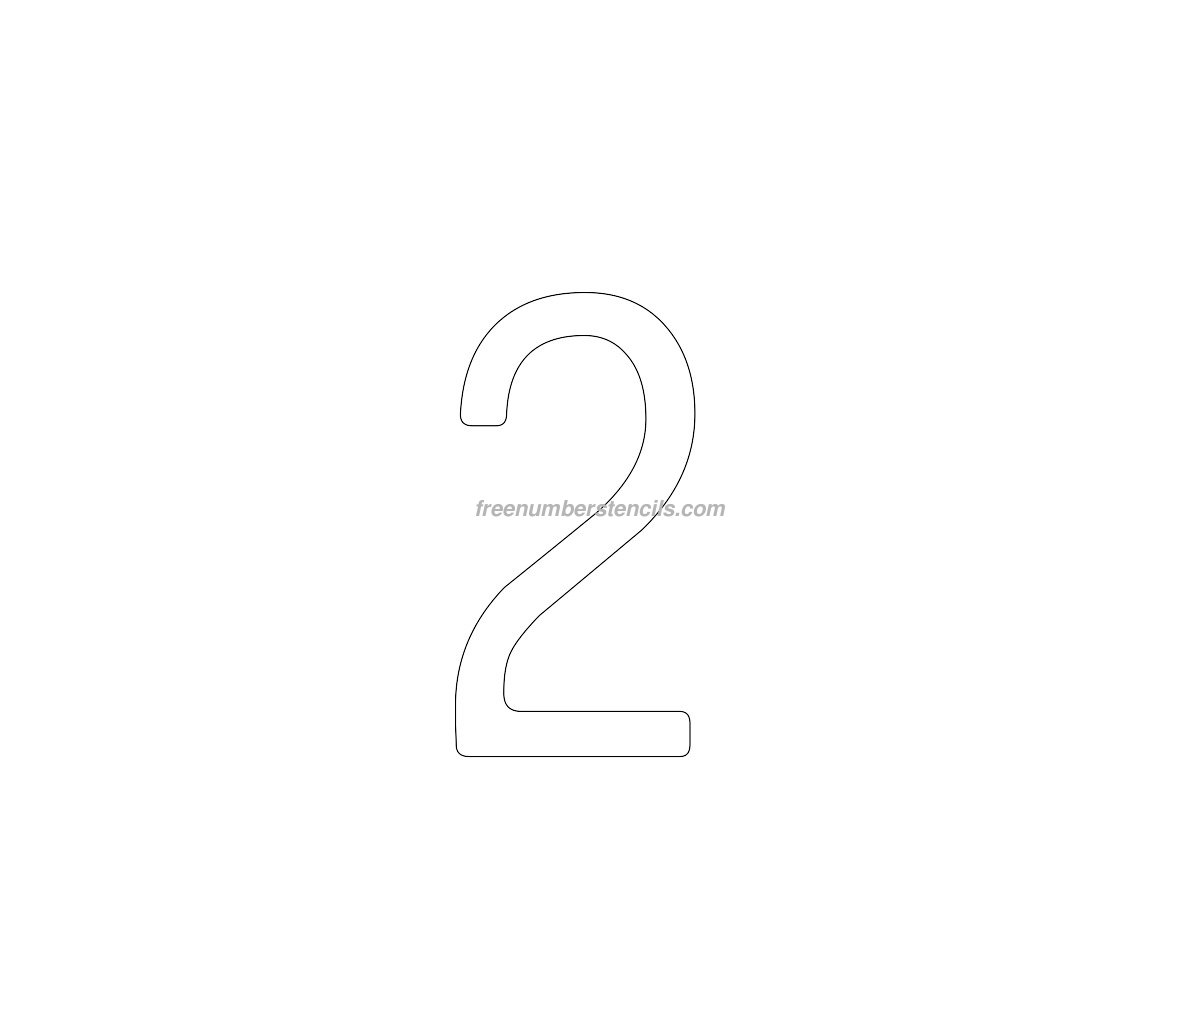 number 2 cake template - cake free 2 number stencil